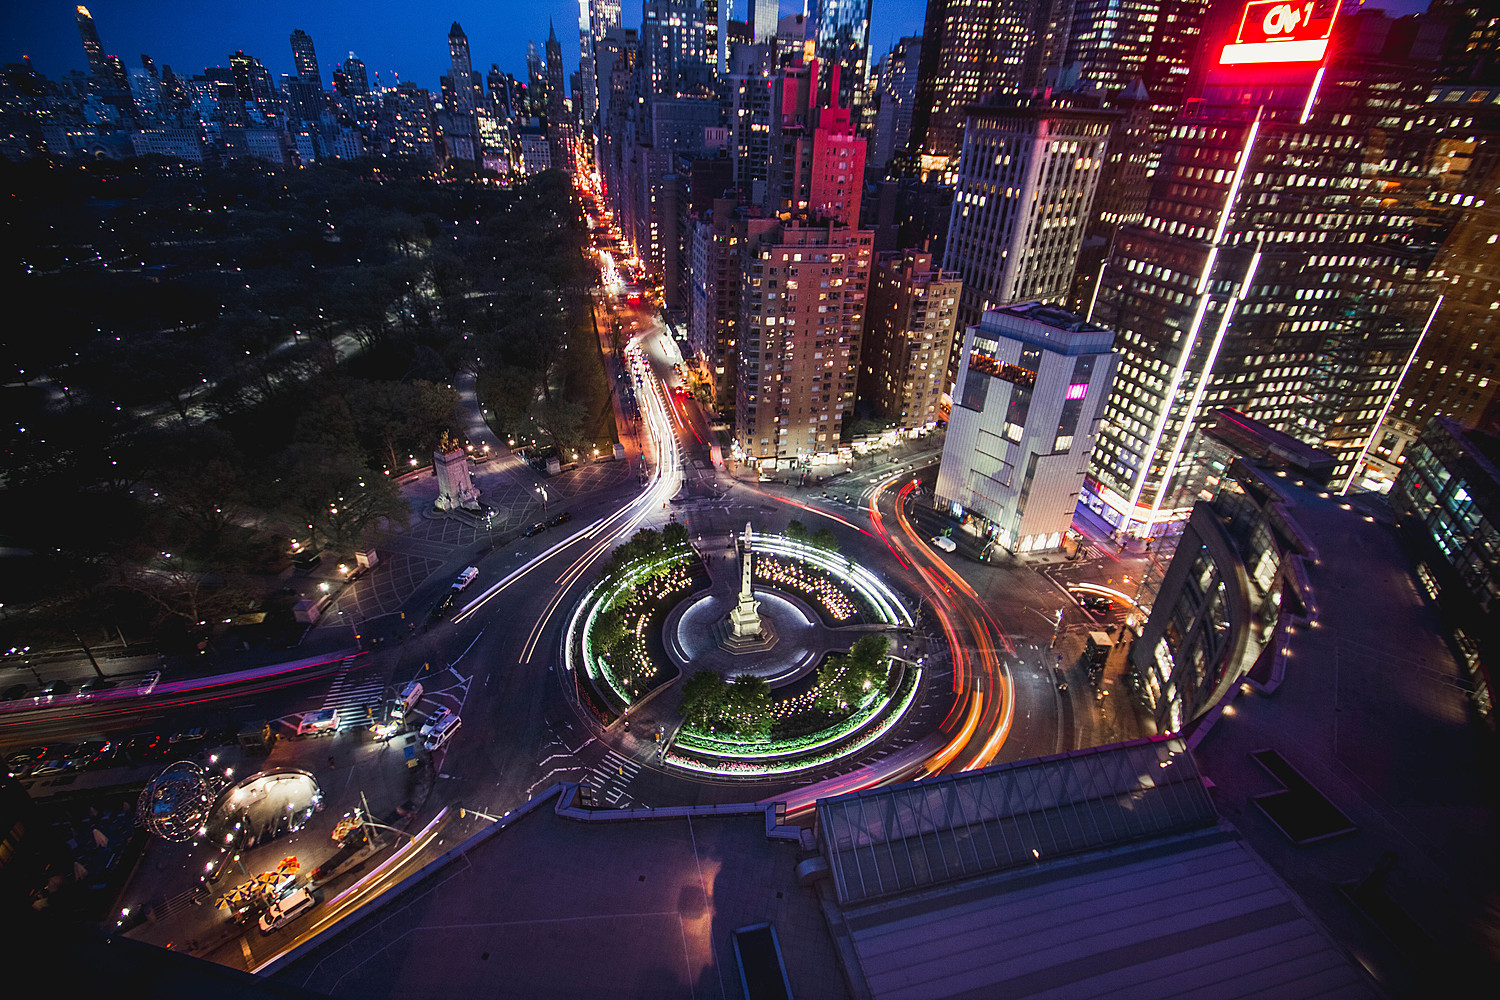 Columbus circle is a mecca for culture in New York City. It lies at the intersection of central park, huge midtown office buildings, and Lincoln Center. It also makes for some great photographs.